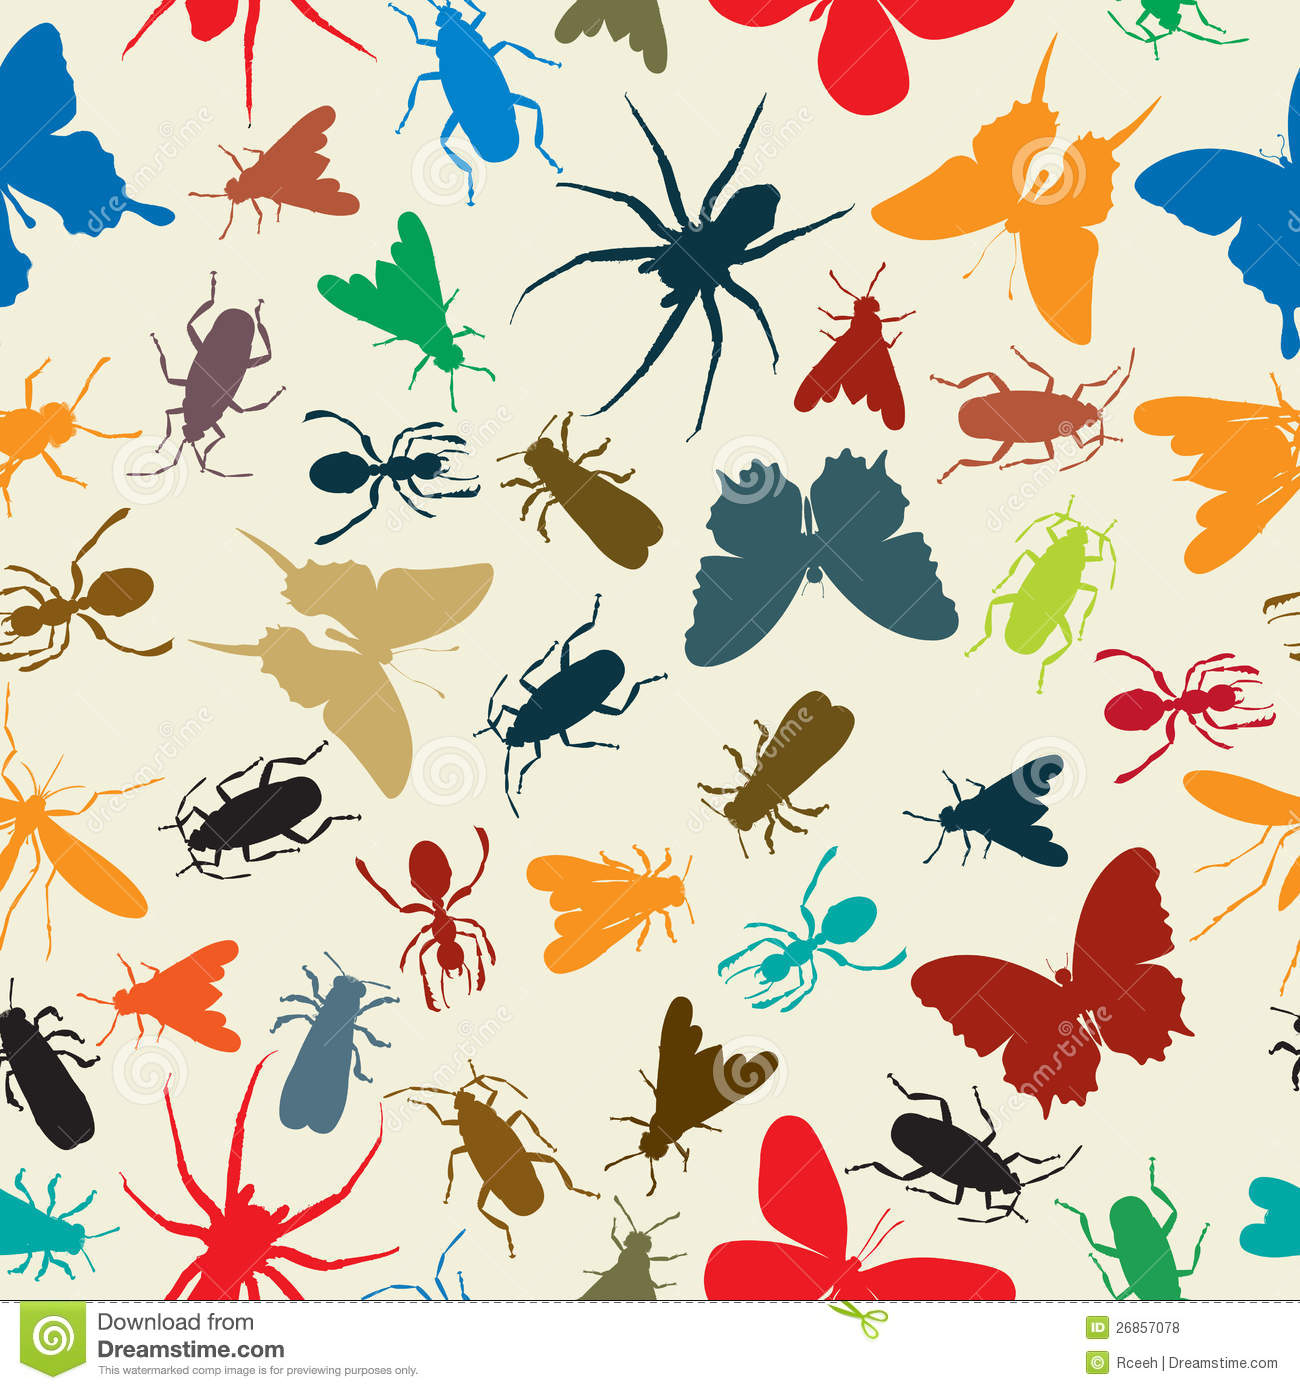 Insects Pattern Royalty Free Stock Photos Image 26857078